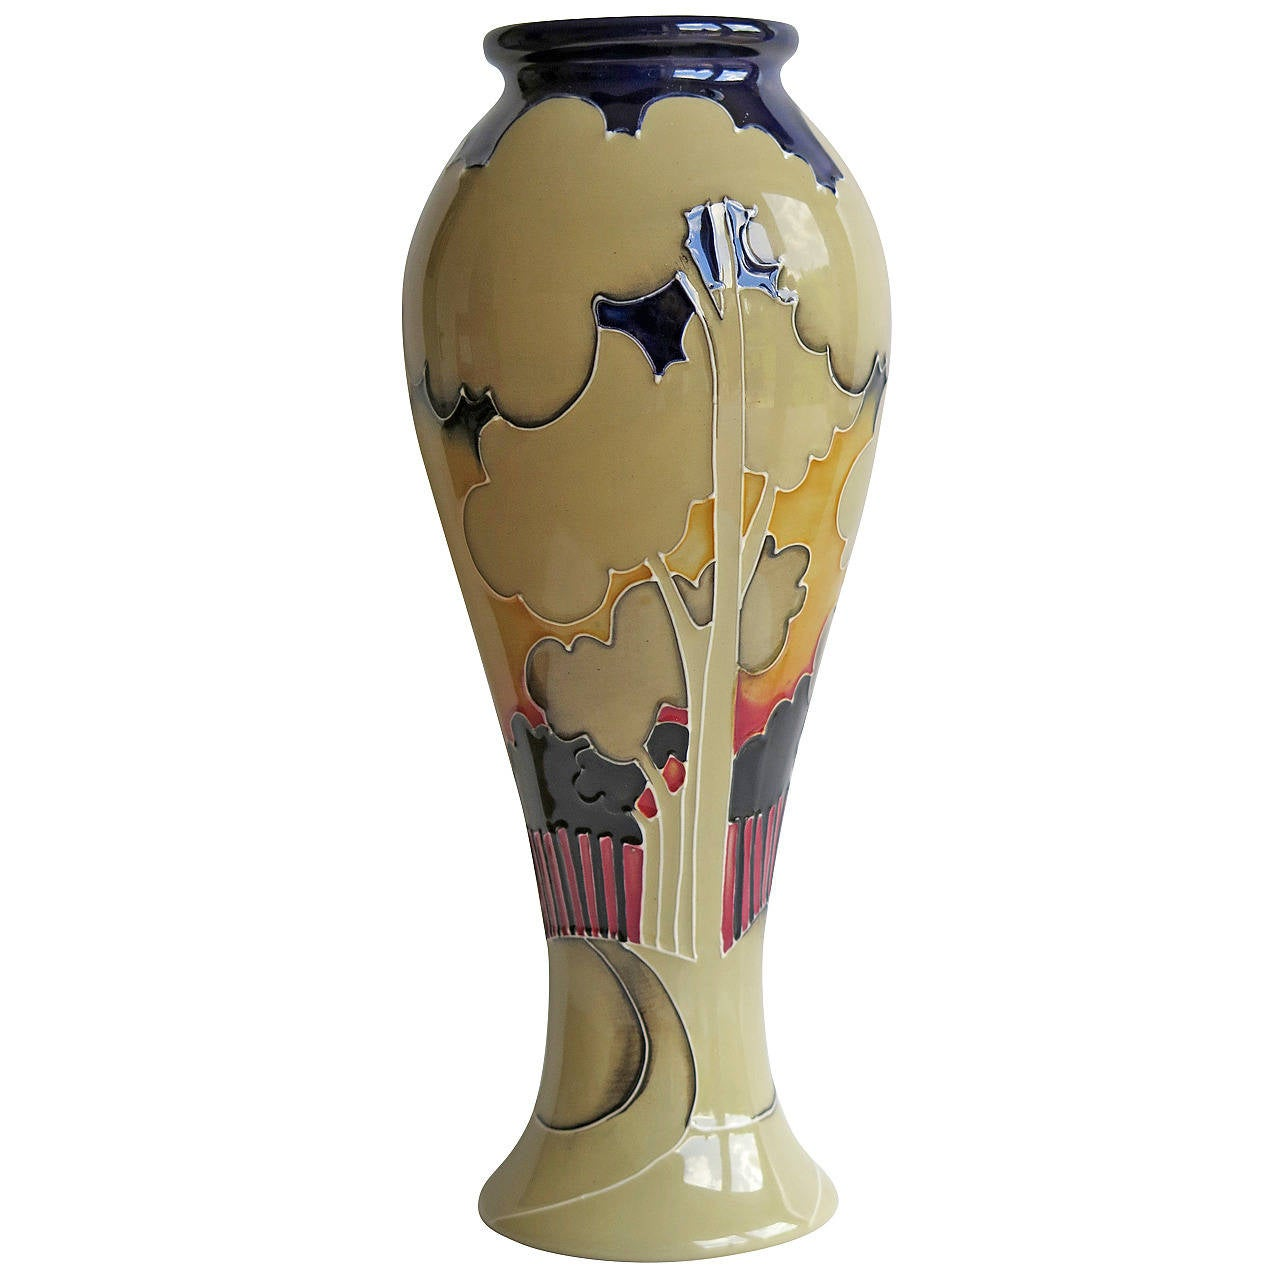 "Moorcroft Pottery Vase, ""Eventide Winter"" by Vicky Lovatt, Limited Edition, 2013"